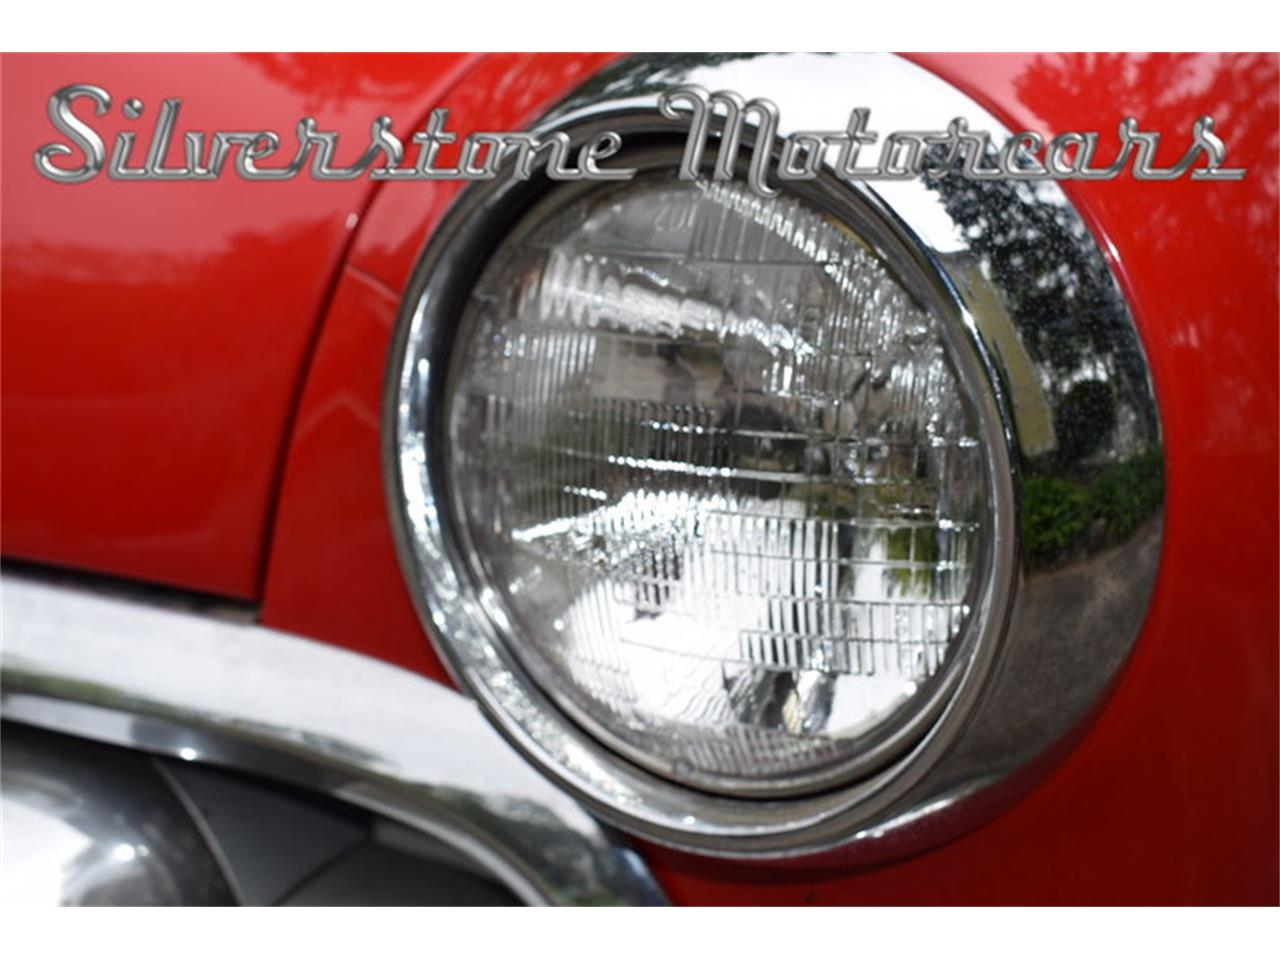 Large Picture of Classic 1951 Ford Custom Deluxe - $39,000.00 Offered by Silverstone Motorcars - L79S